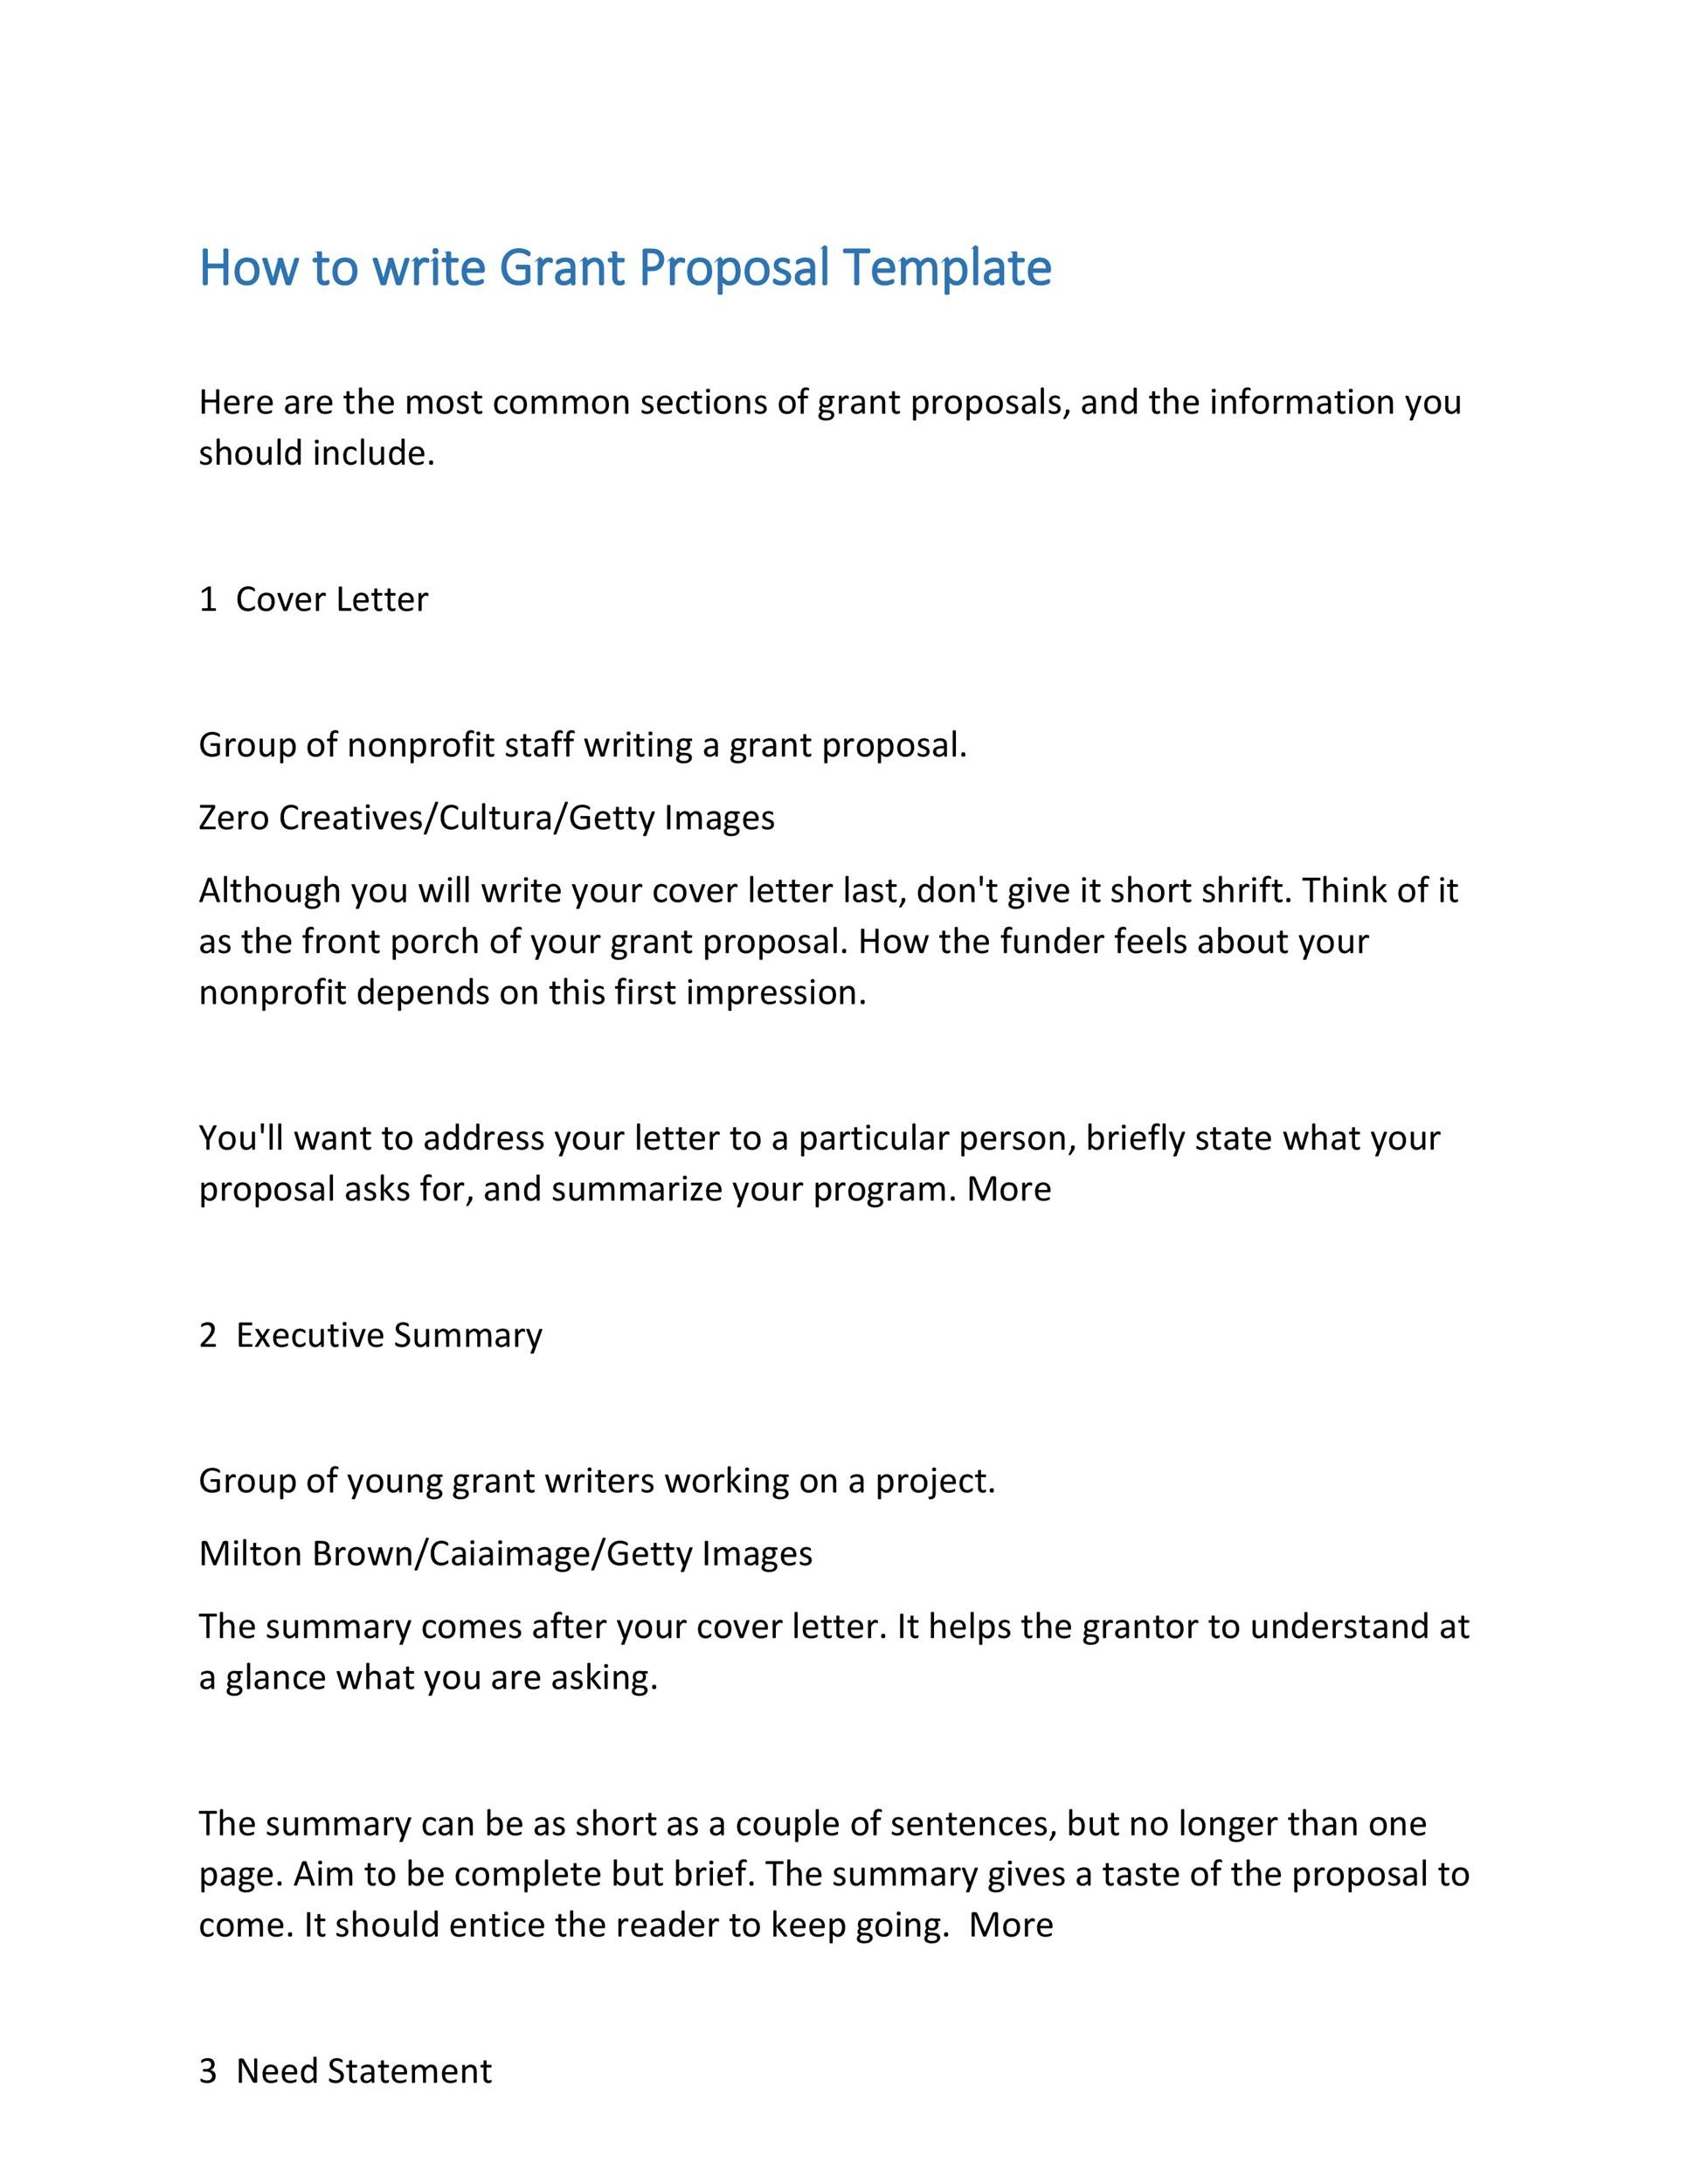 40+ Grant Proposal Templates NSF, Non-Profit, Research - Template Lab - Non Profit Proposal Template